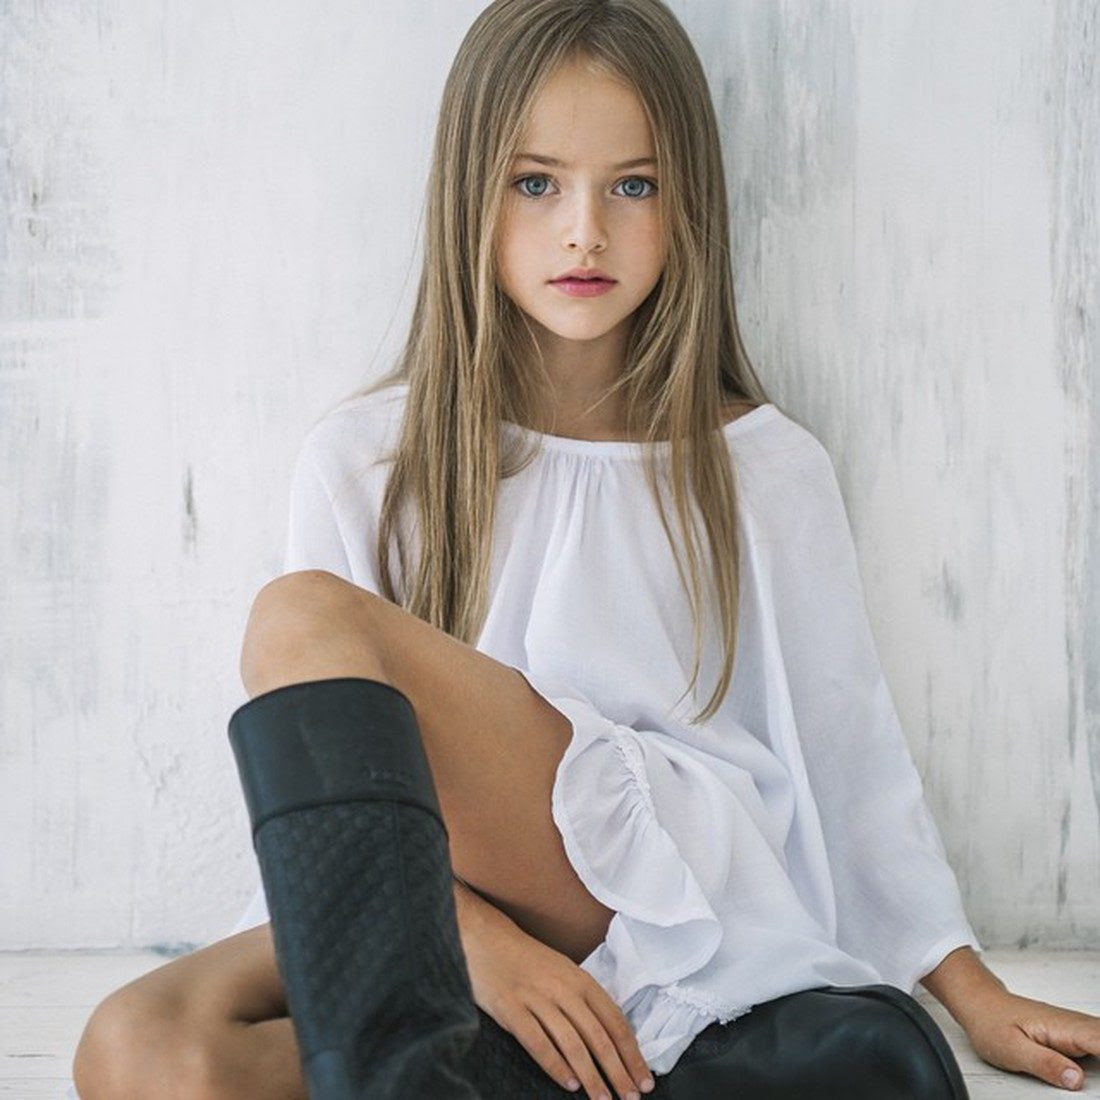 the-most-beautiful-girlin-the-world-is-only-10-years-old_06